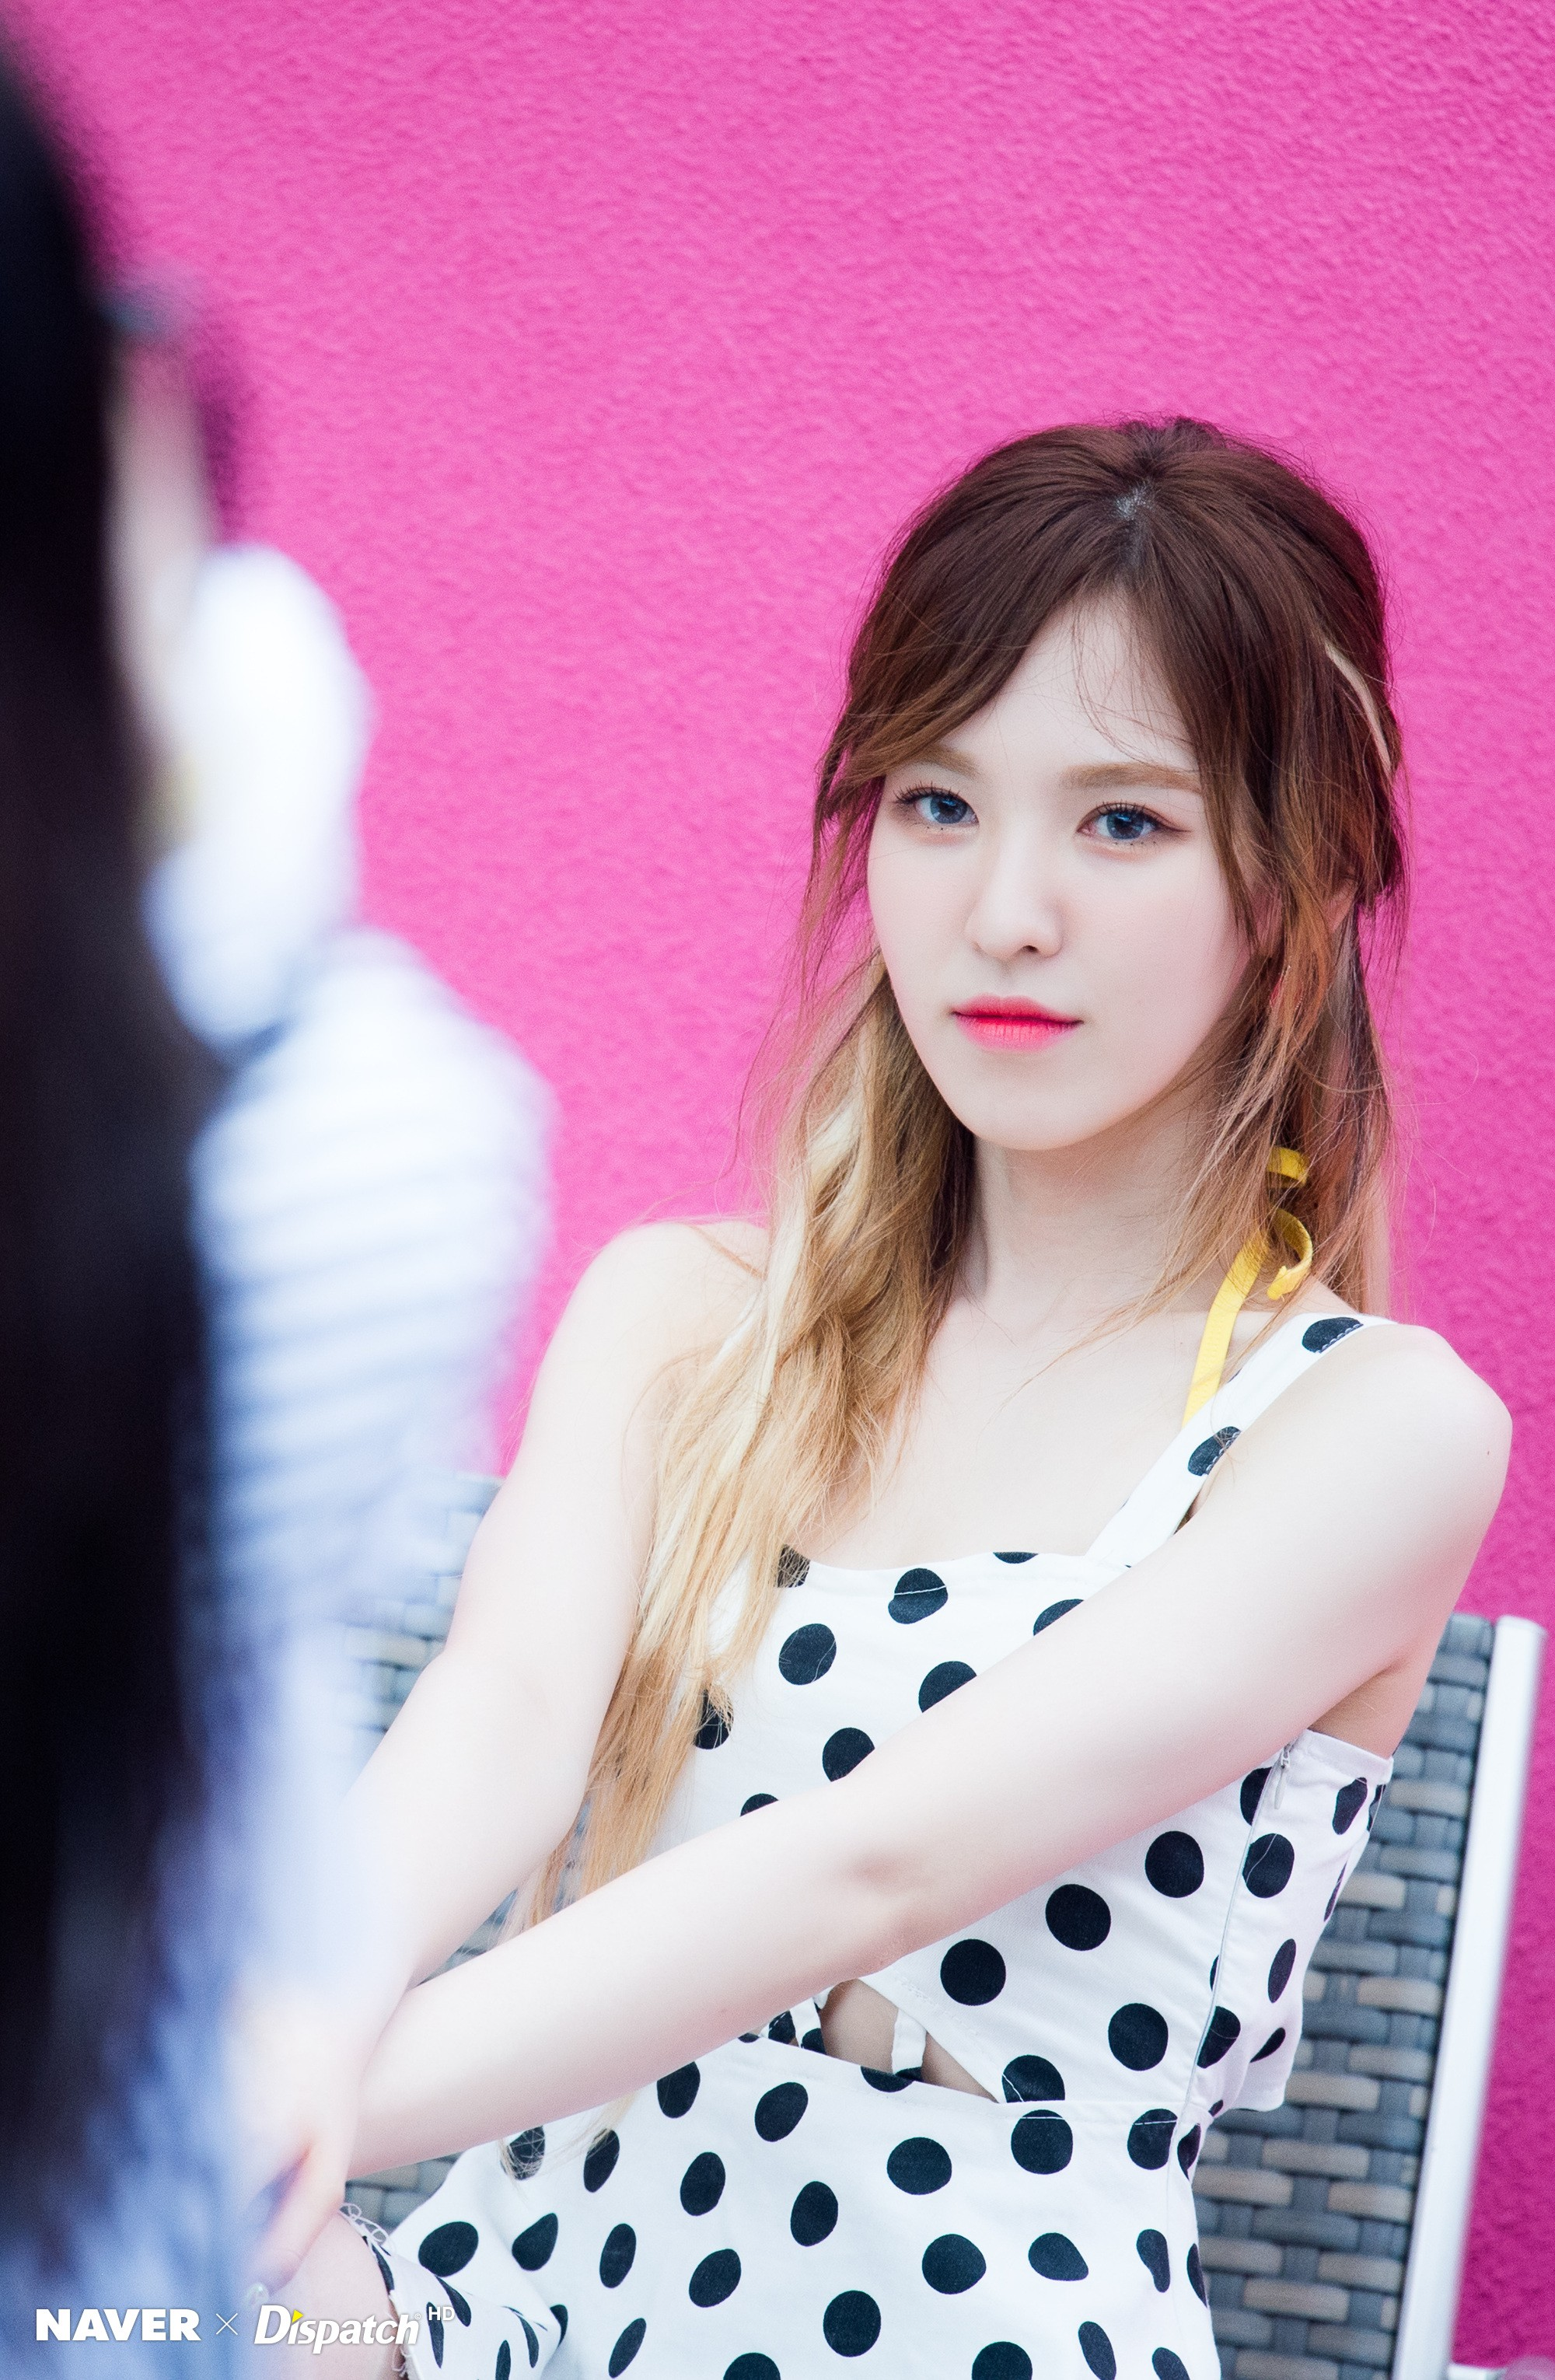 Cute Boo Desktop Wallpaper 18 Hd Photos From The Red Velvet Pool Party You Wish You